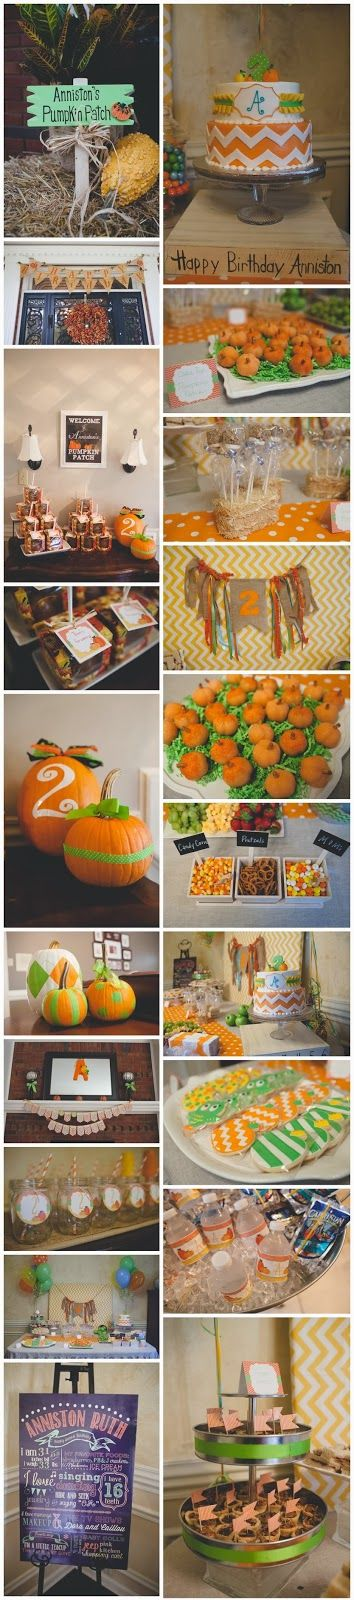 "Handbags & Hair Bows: Anniston's ""Pumpkin Patch"" 2nd Birthday Party"